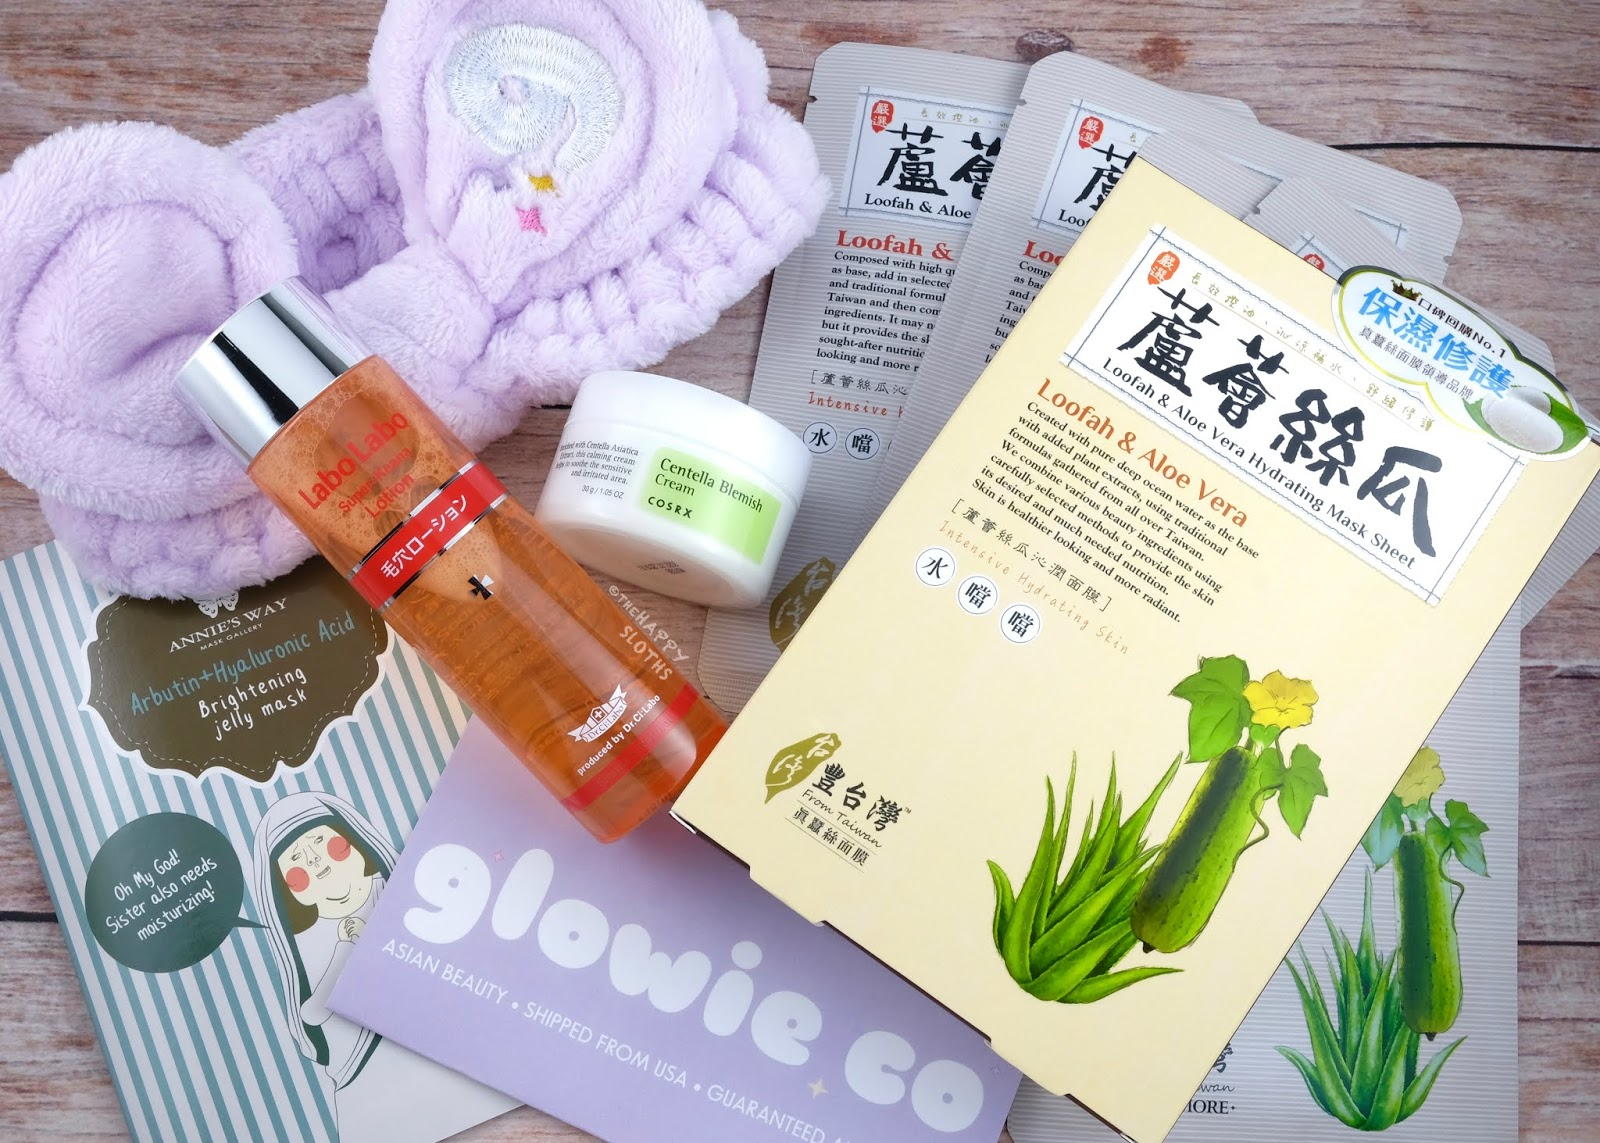 Glowie Co | The Best of Japanese, Taiwanese, and Korean Beauty & Skincare